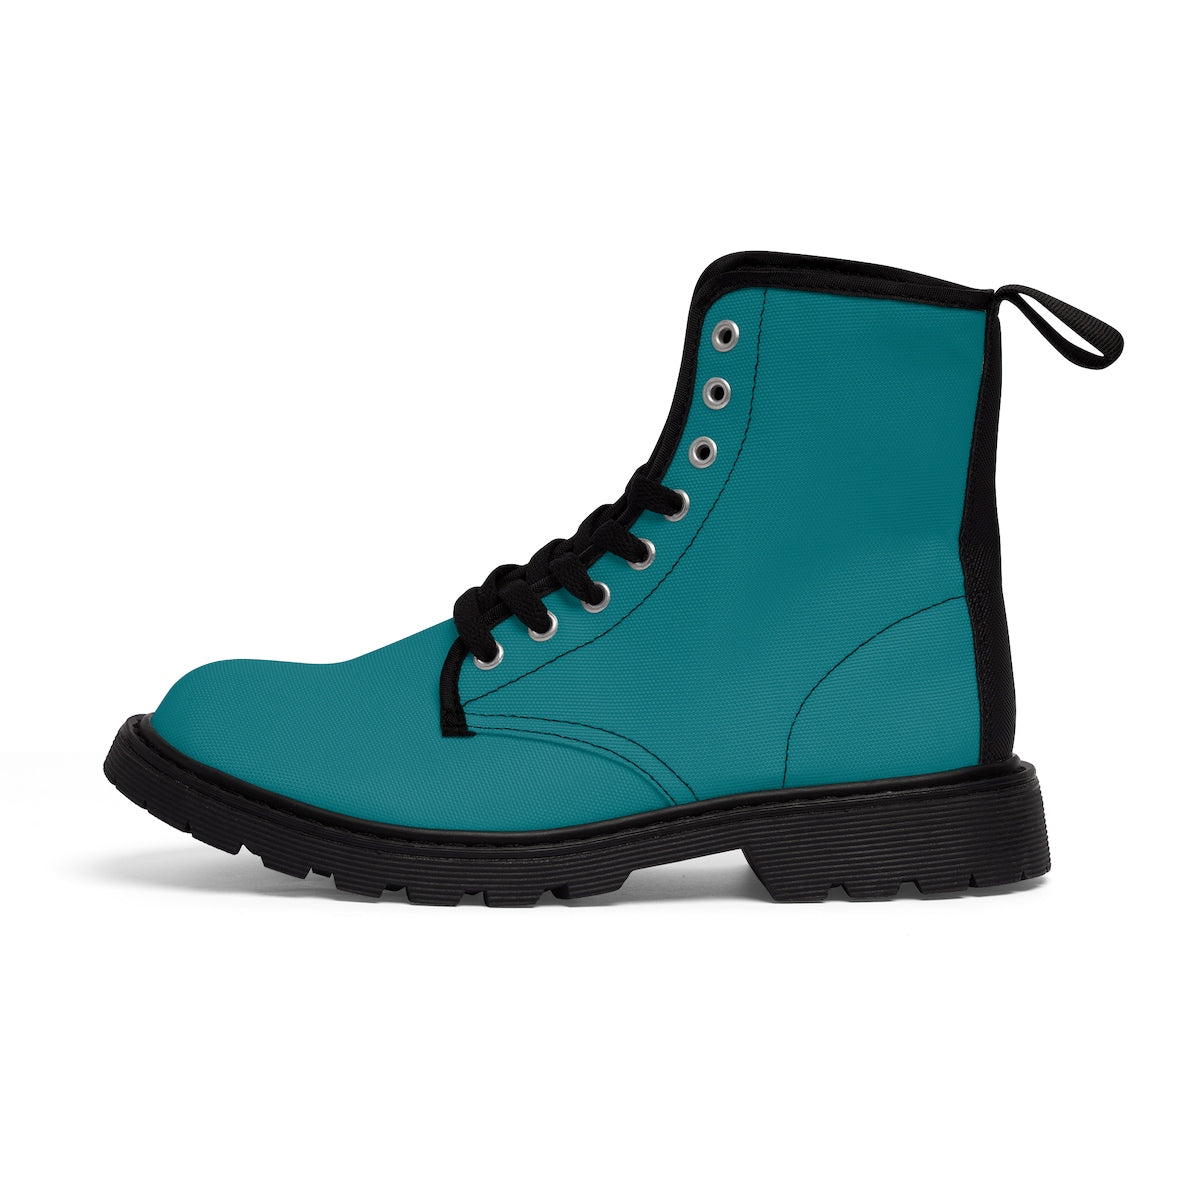 Blue Teal Women's Boots, Blue Teal Classic Solid Color Comfortable Designer Women's Winter Lace-up Toe Cap Combat Winter Blue Ankle Boots, Best Blue Boots For Women, Hiking Boots, Hiker's Boots (US Size 6.5-11) Blue Teal Classic Solid Color Designer Comfy Women's Winter Lace-up Toe Cap Boots-Women's Boots-Black-US 9-Heidi Kimura Art LLC